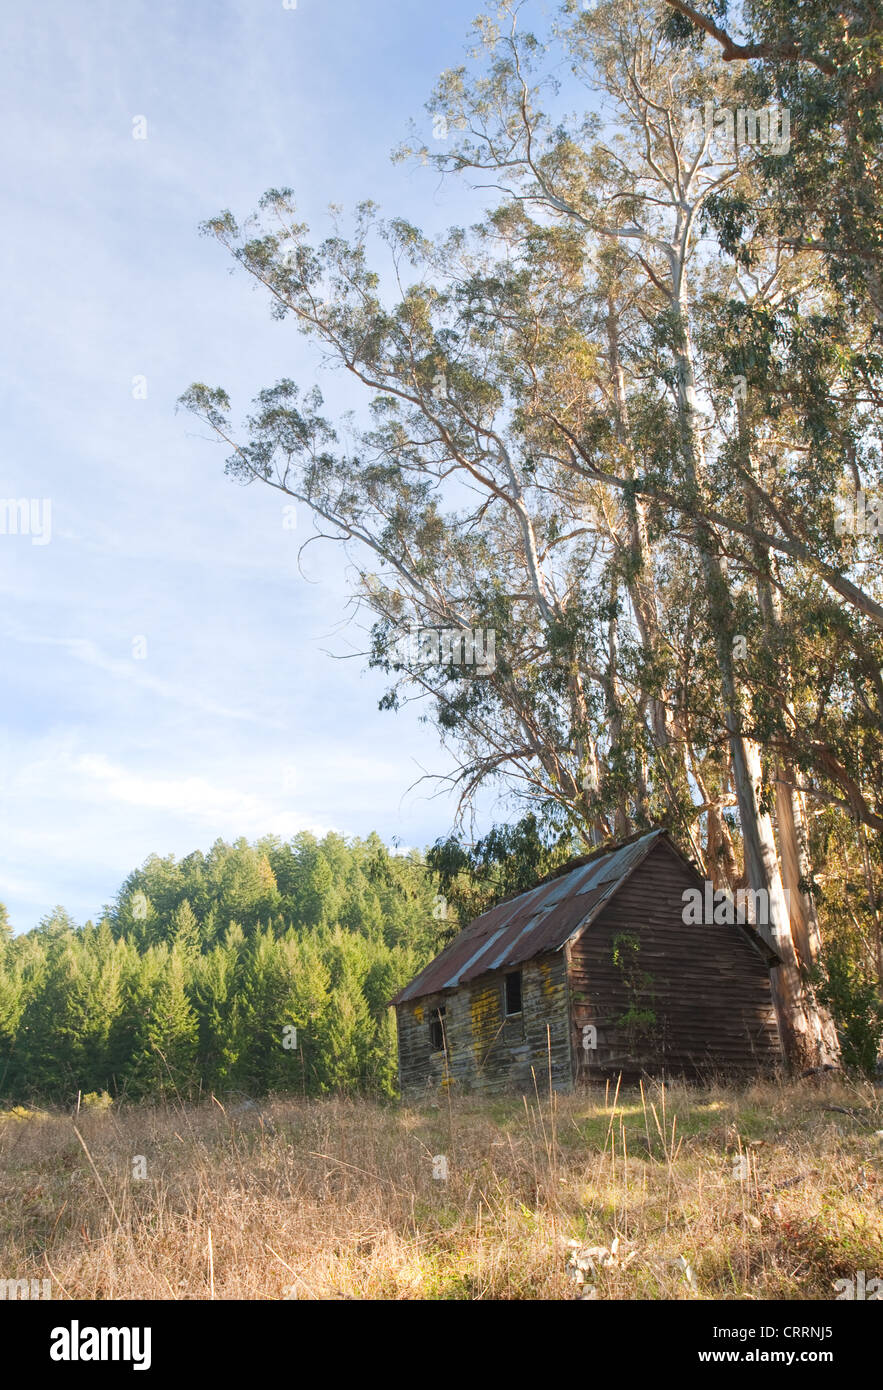 Old Abandoned Cabin in Sunny Field - Stock Image